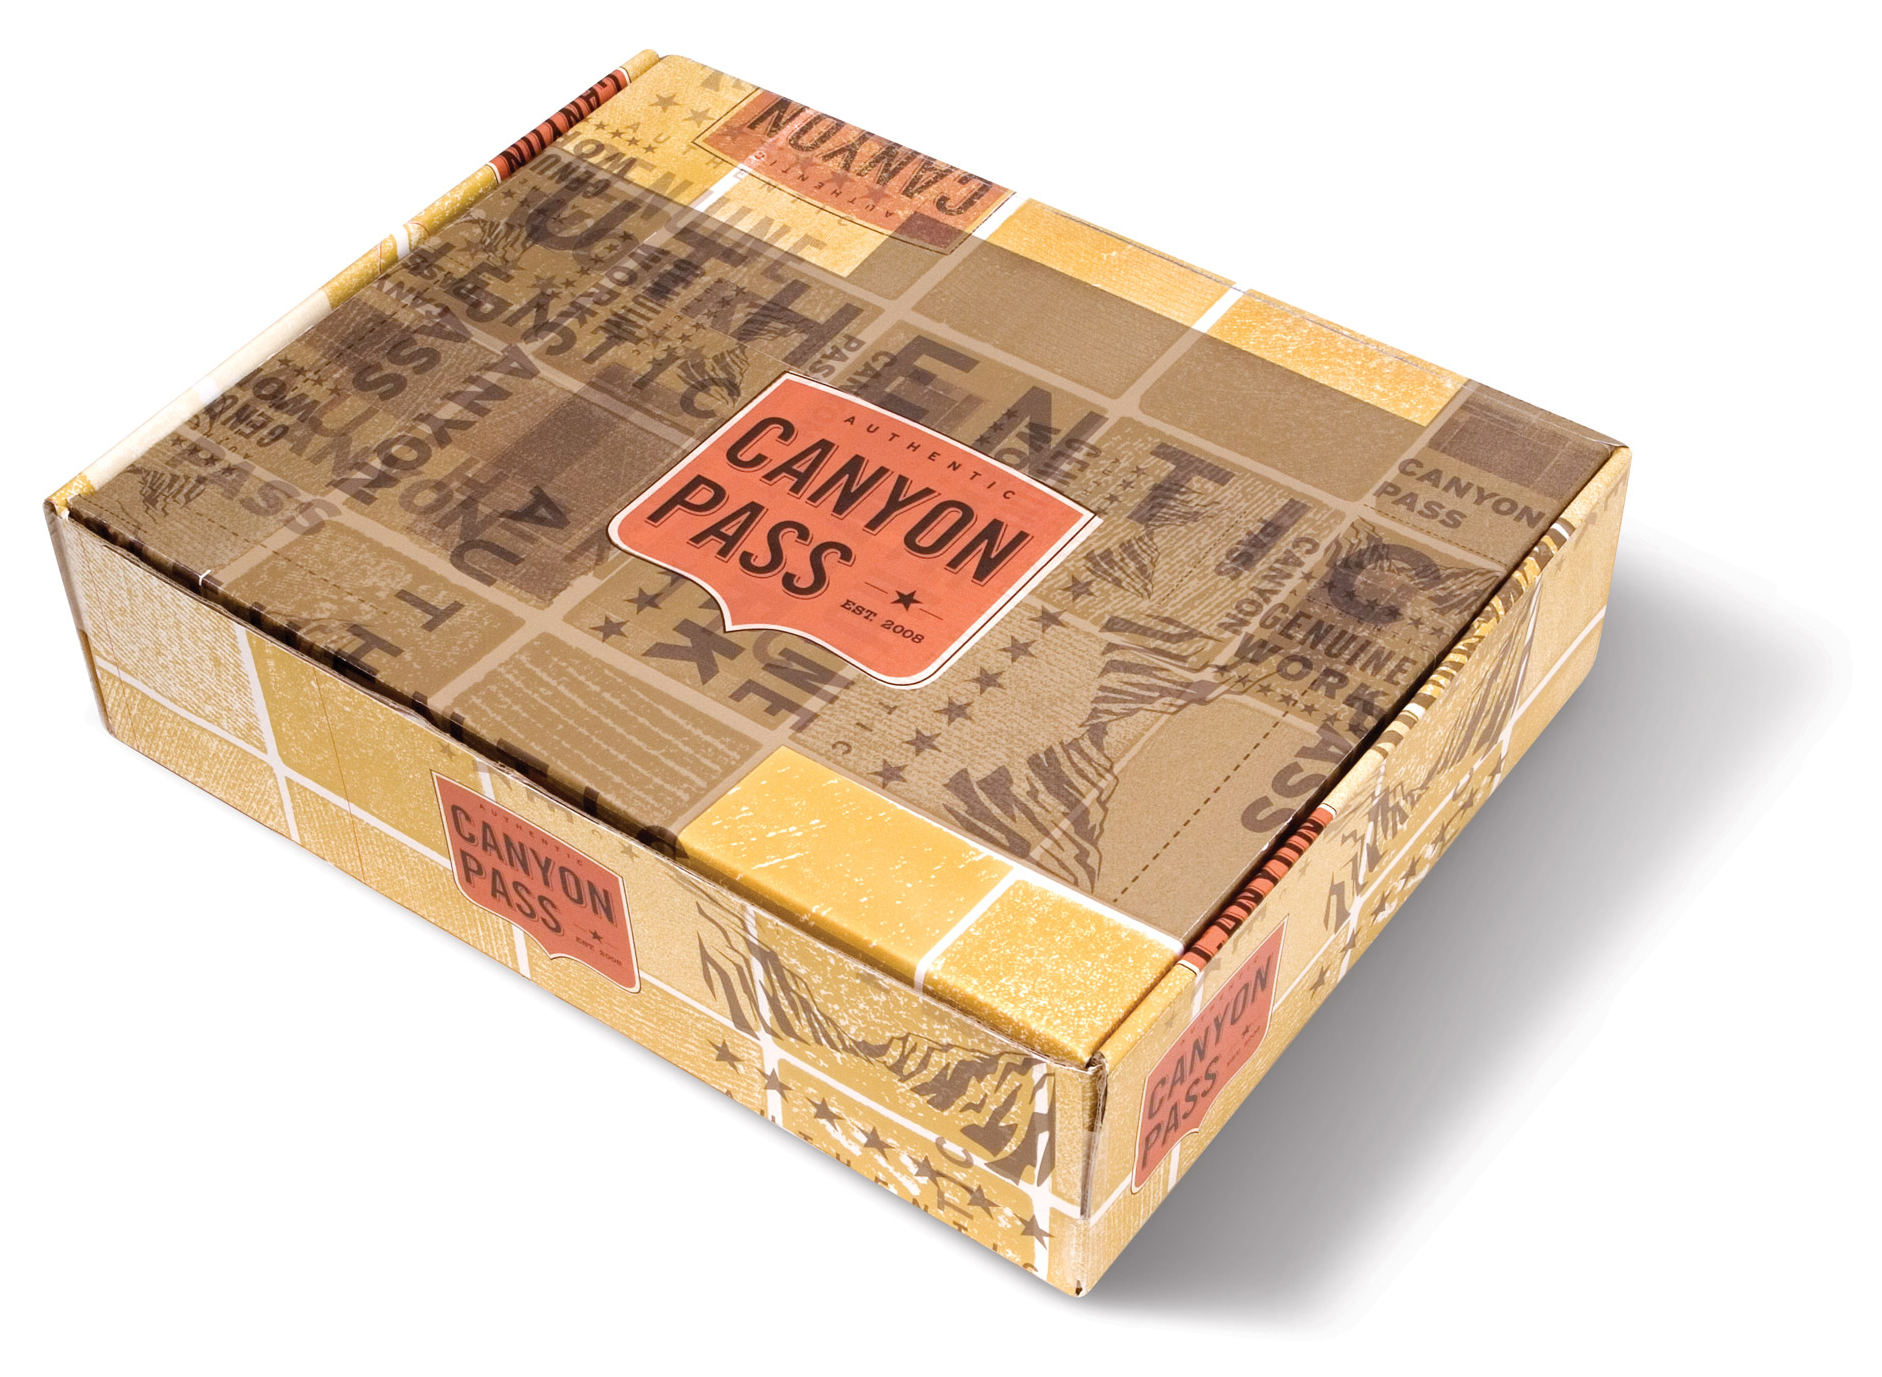 Canyon Pass Boot Box Packaging